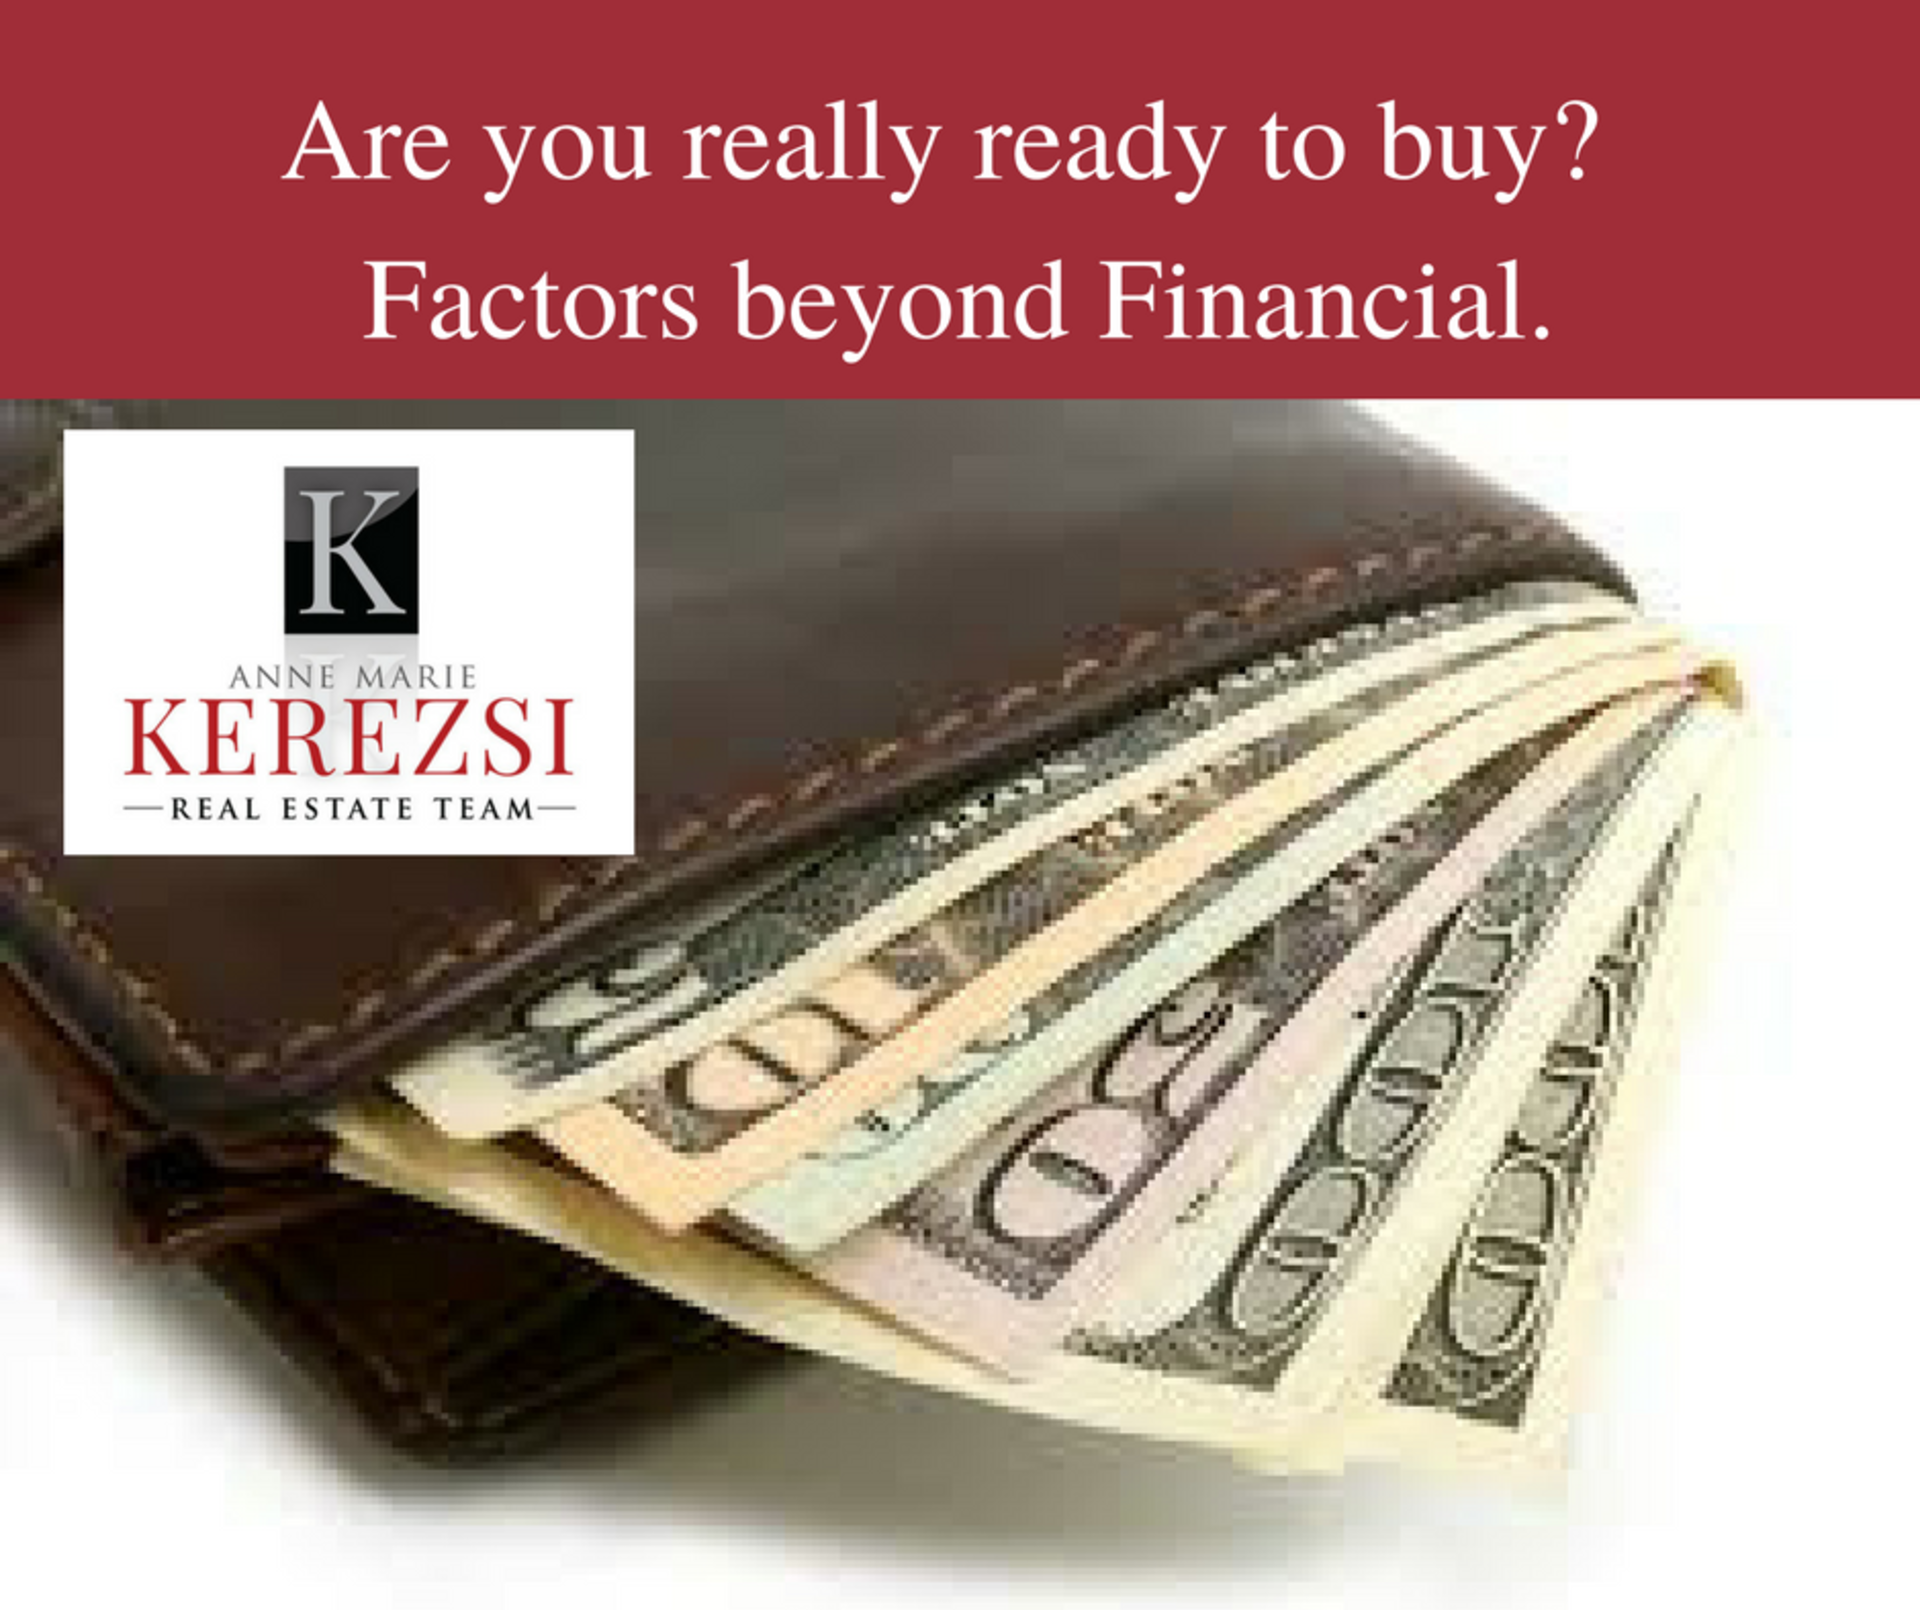 Are You Really Ready to Buy? Factors Beyond Financial (from HomeKeepr)